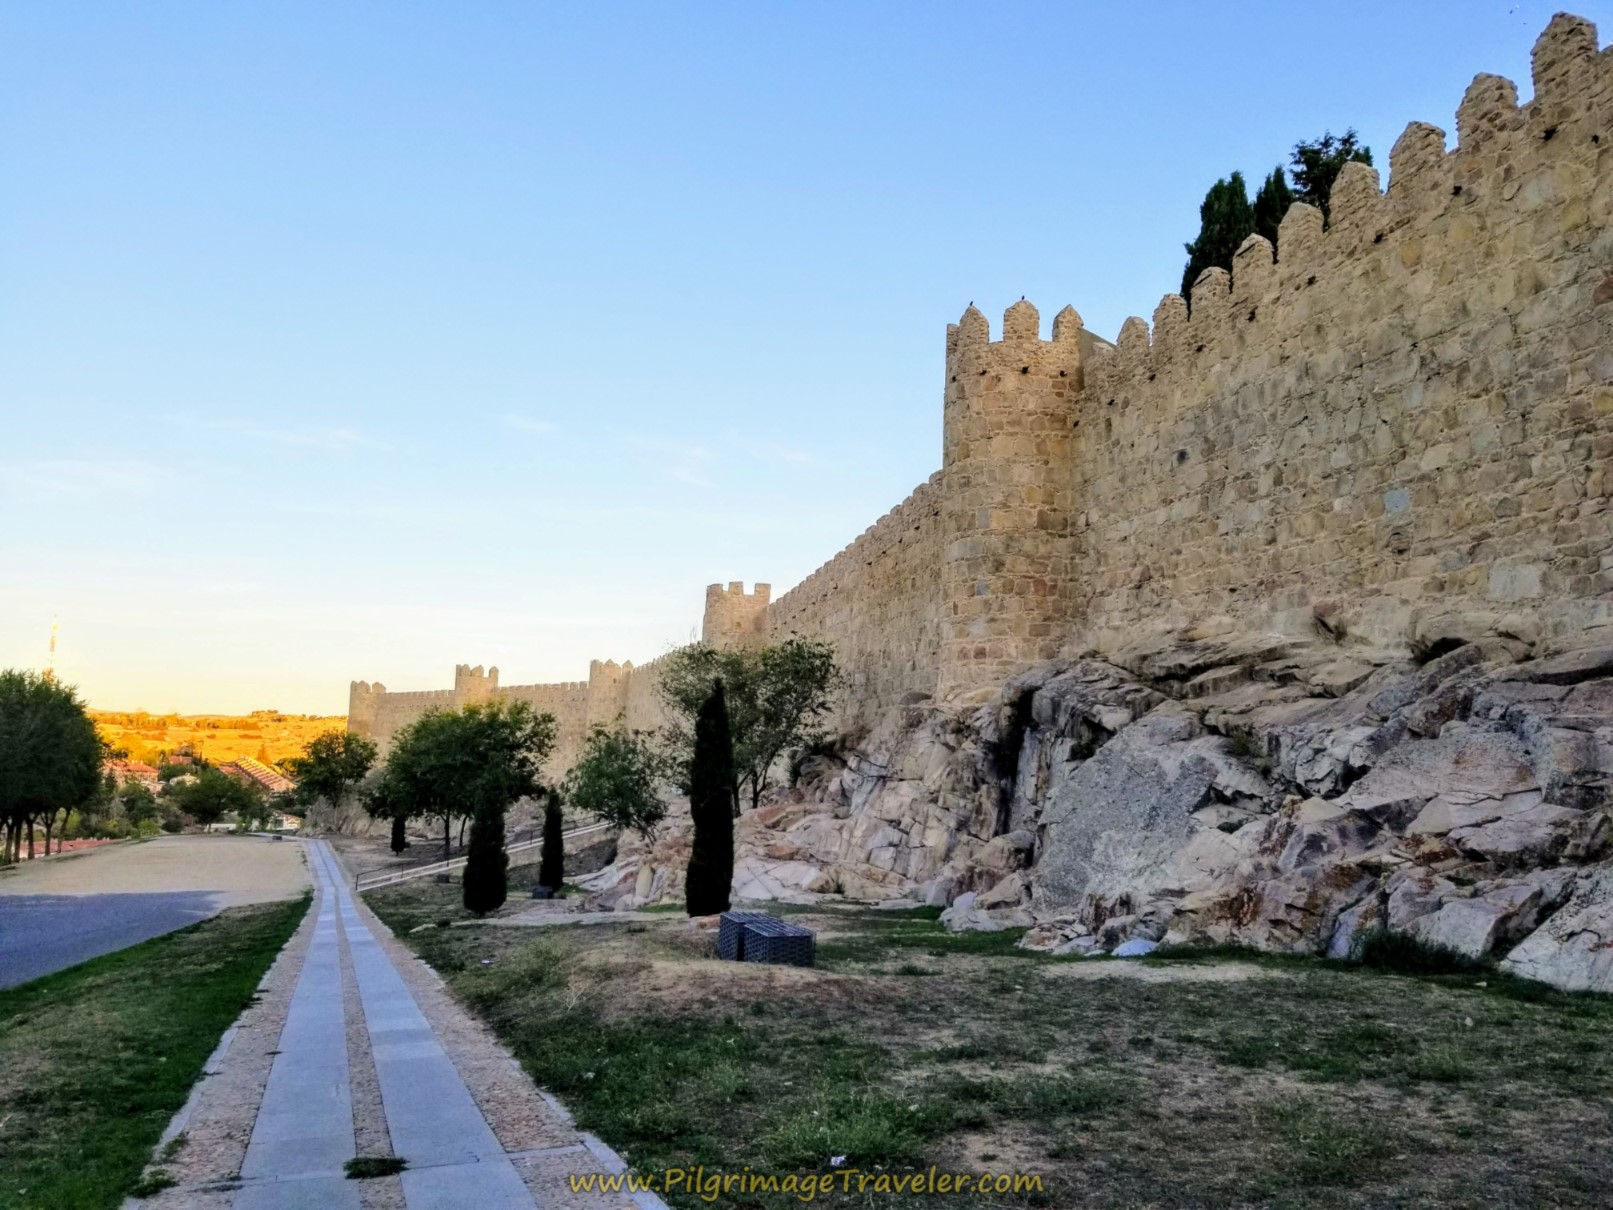 The Camino Teresiano follows along the Ávila fortress walls for about 400 meters of historical fun!